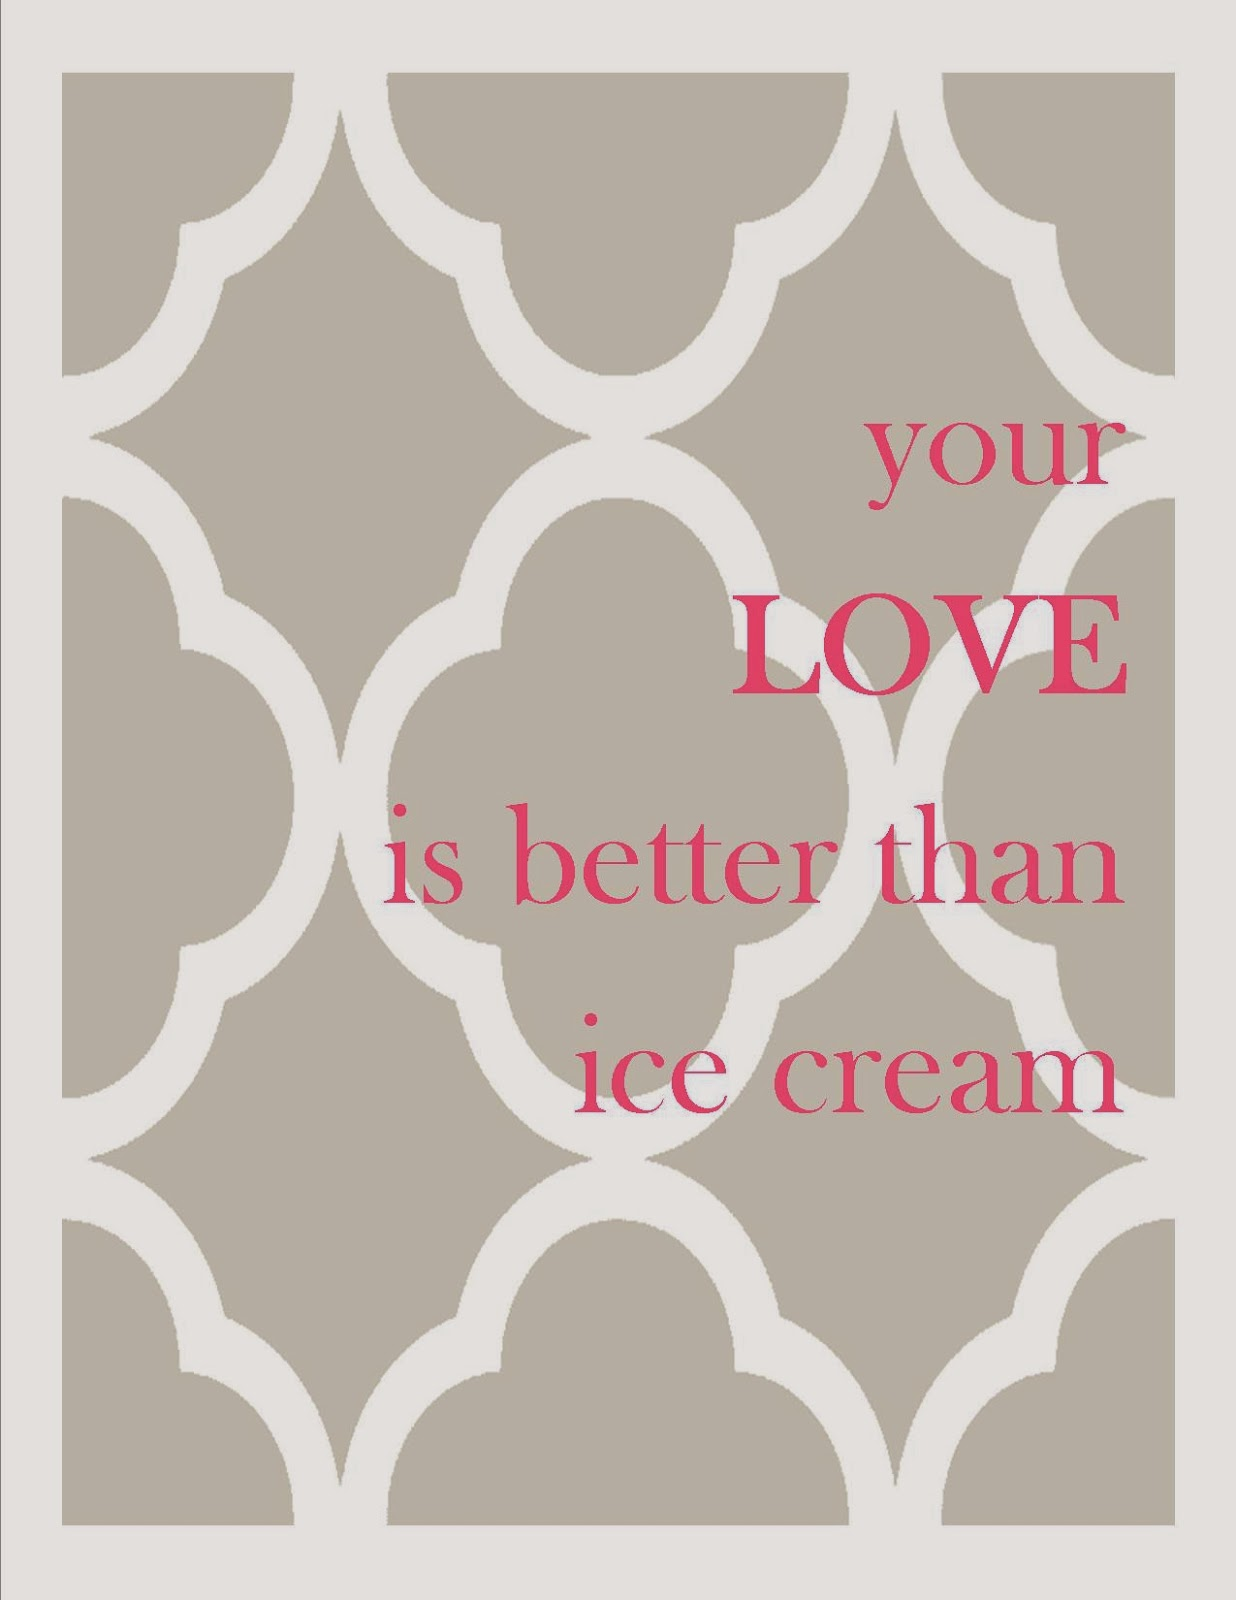 Commona My House: Freebie Friday: Your Love is Better than Ice Cream